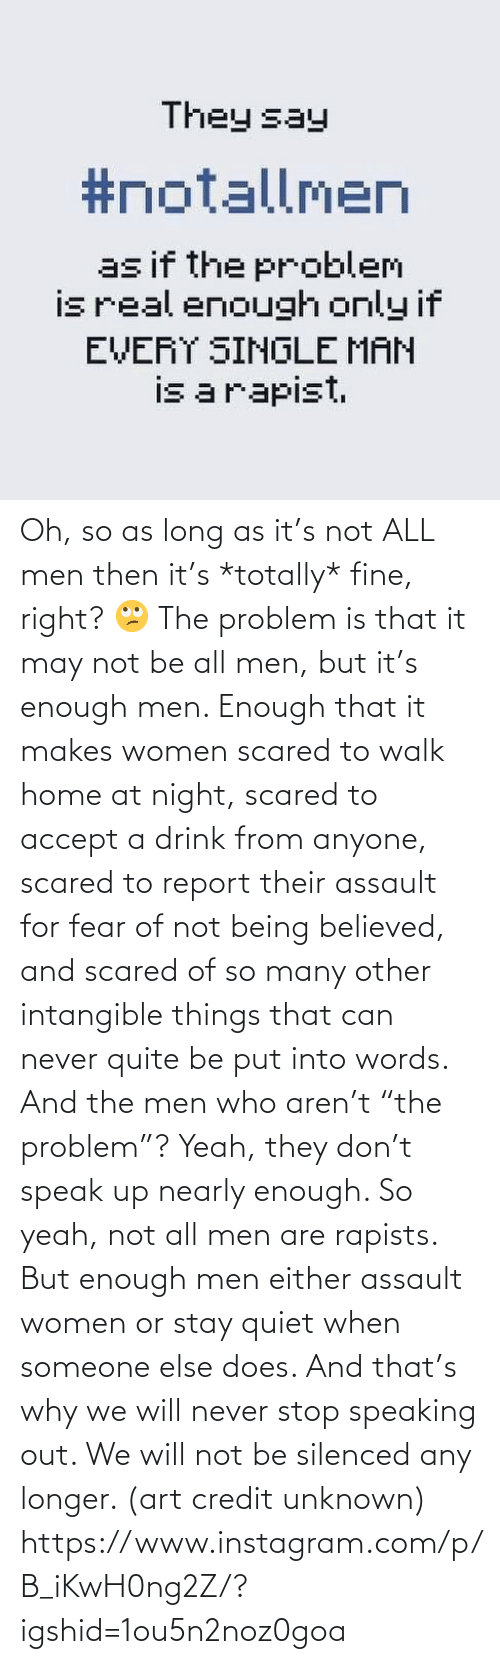 """Not Being: Oh, so as long as it's not ALL men then it's *totally* fine, right? 🙄 The problem is that it may not be all men, but it's enough men. Enough that it makes women scared to walk home at night, scared to accept a drink from anyone, scared to report their assault for fear of not being believed, and scared of so many other intangible things that can never quite be put into words. And the men who aren't """"the problem""""? Yeah, they don't speak up nearly enough. So yeah, not all men are rapists. But enough men either assault women or stay quiet when someone else does. And that's why we will never stop speaking out. We will not be silenced any longer. (art credit unknown)  https://www.instagram.com/p/B_iKwH0ng2Z/?igshid=1ou5n2noz0goa"""